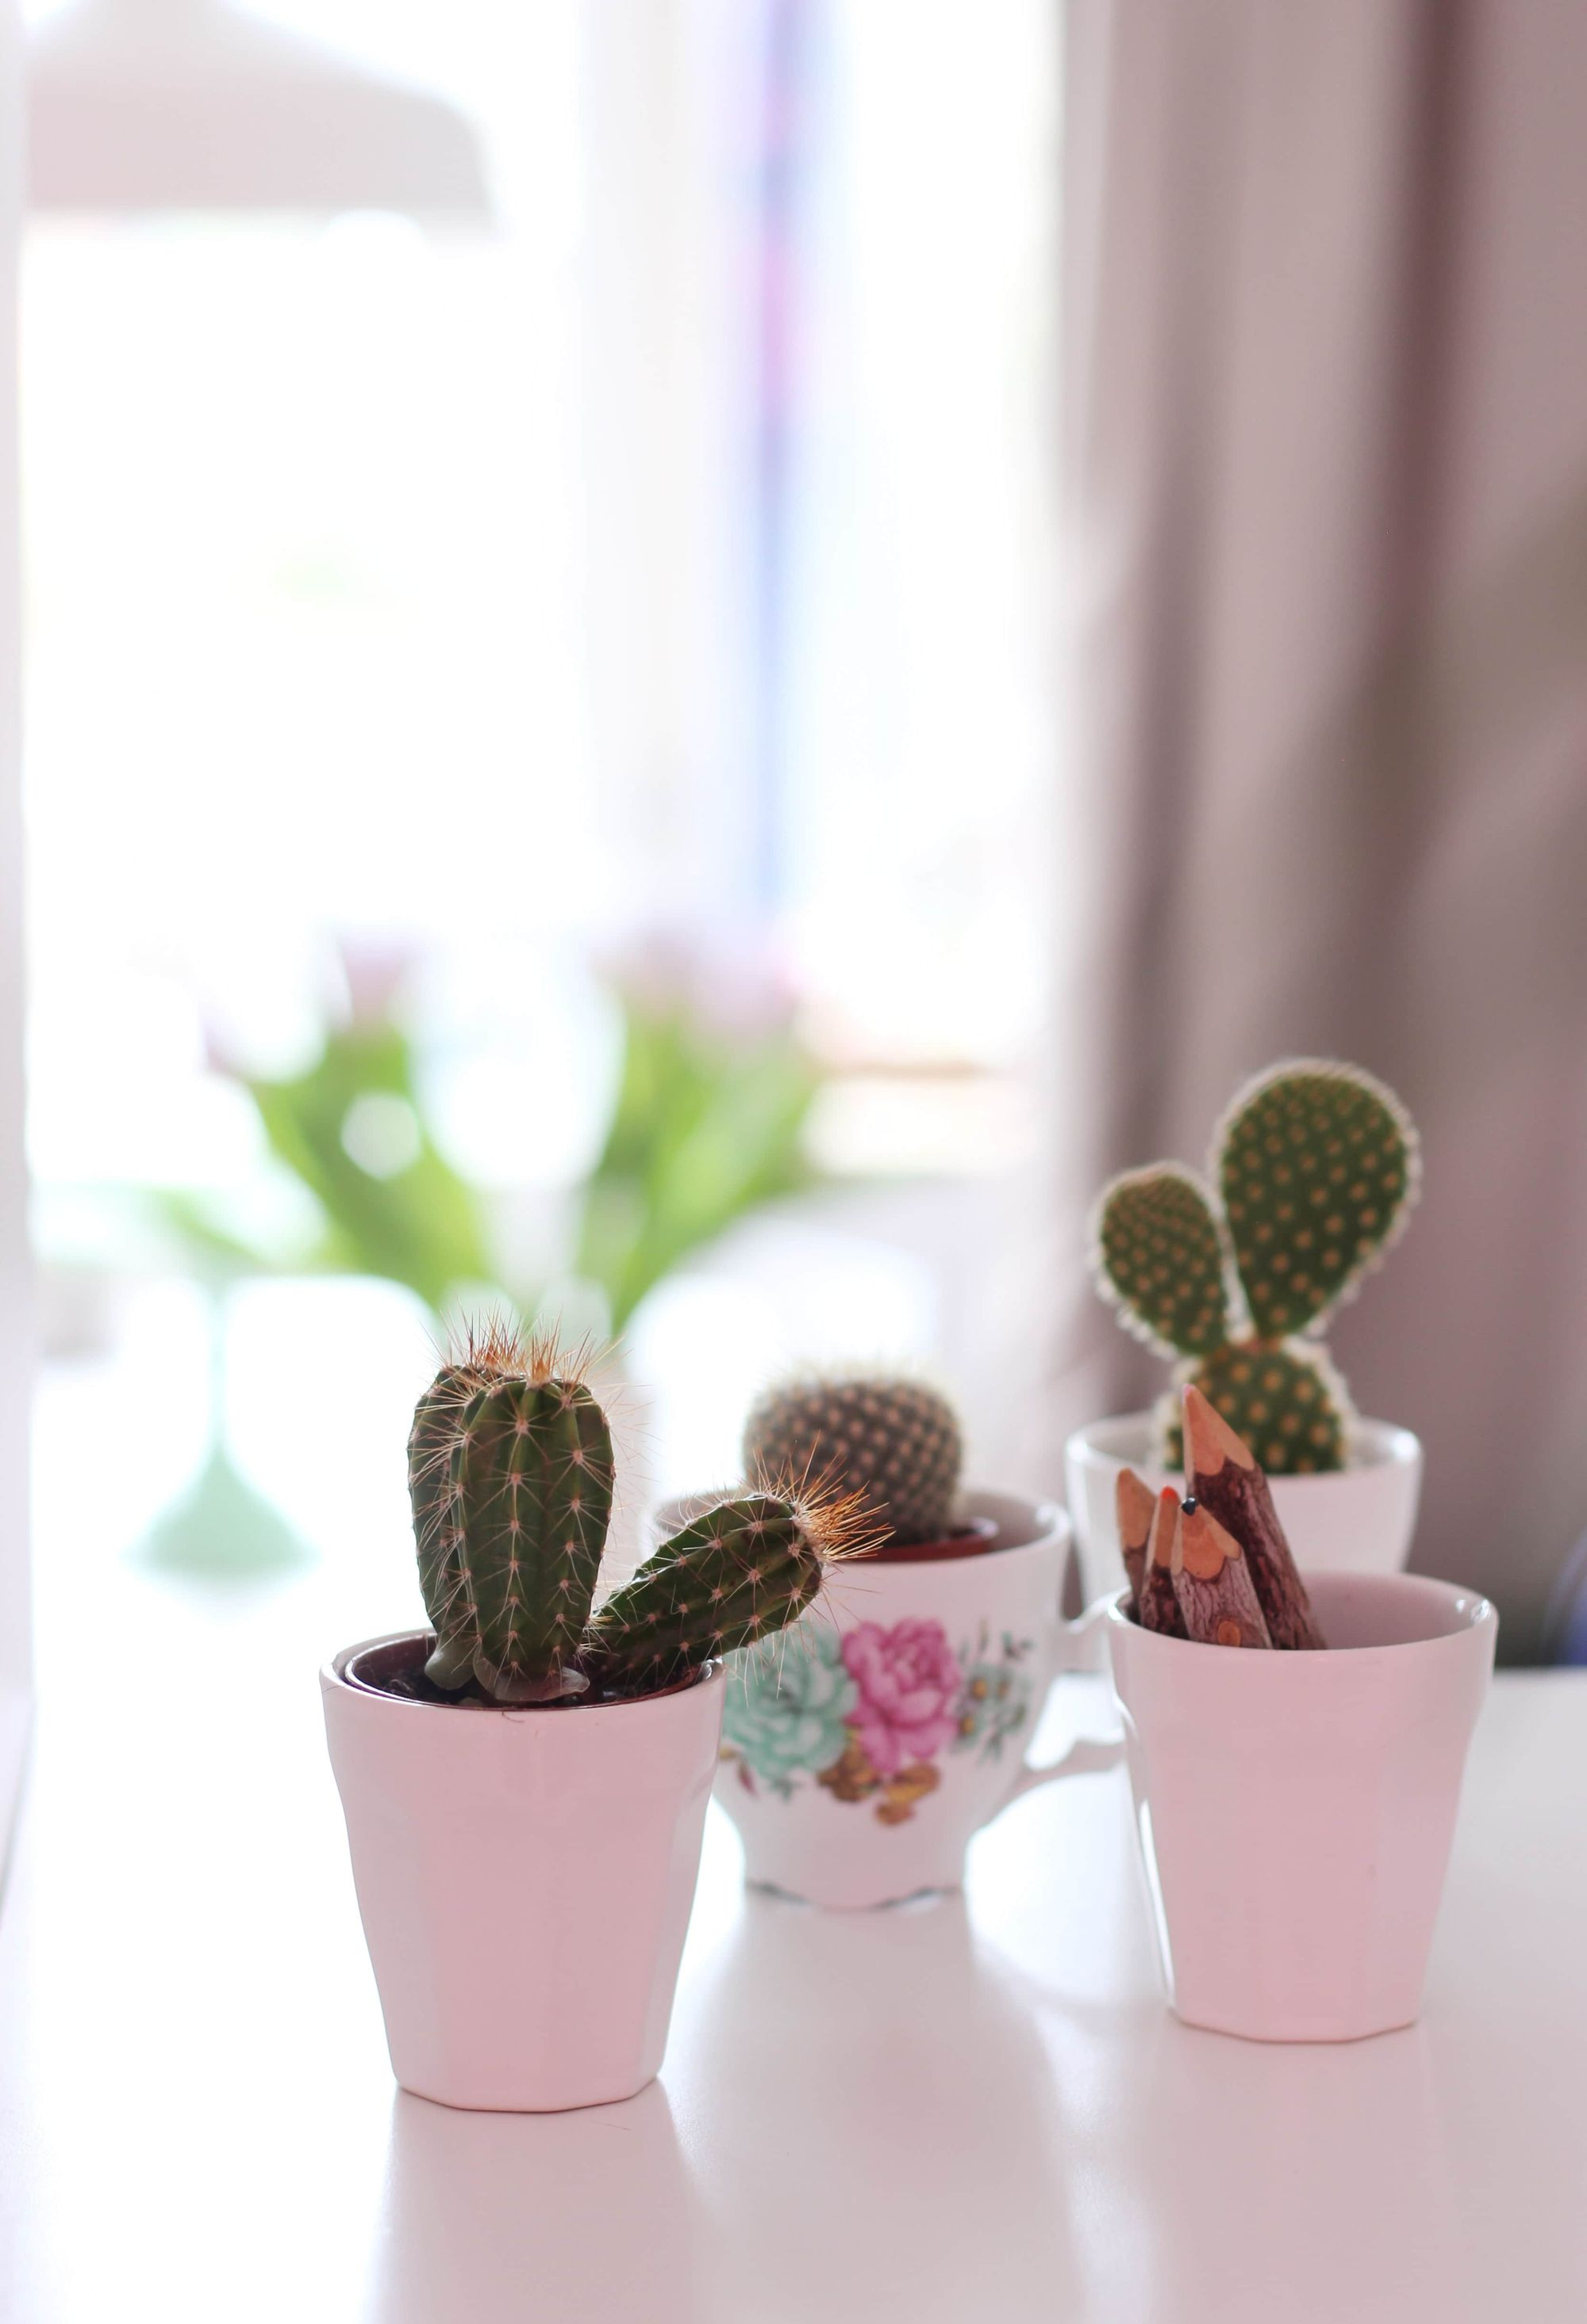 succulent plants in pots on desk